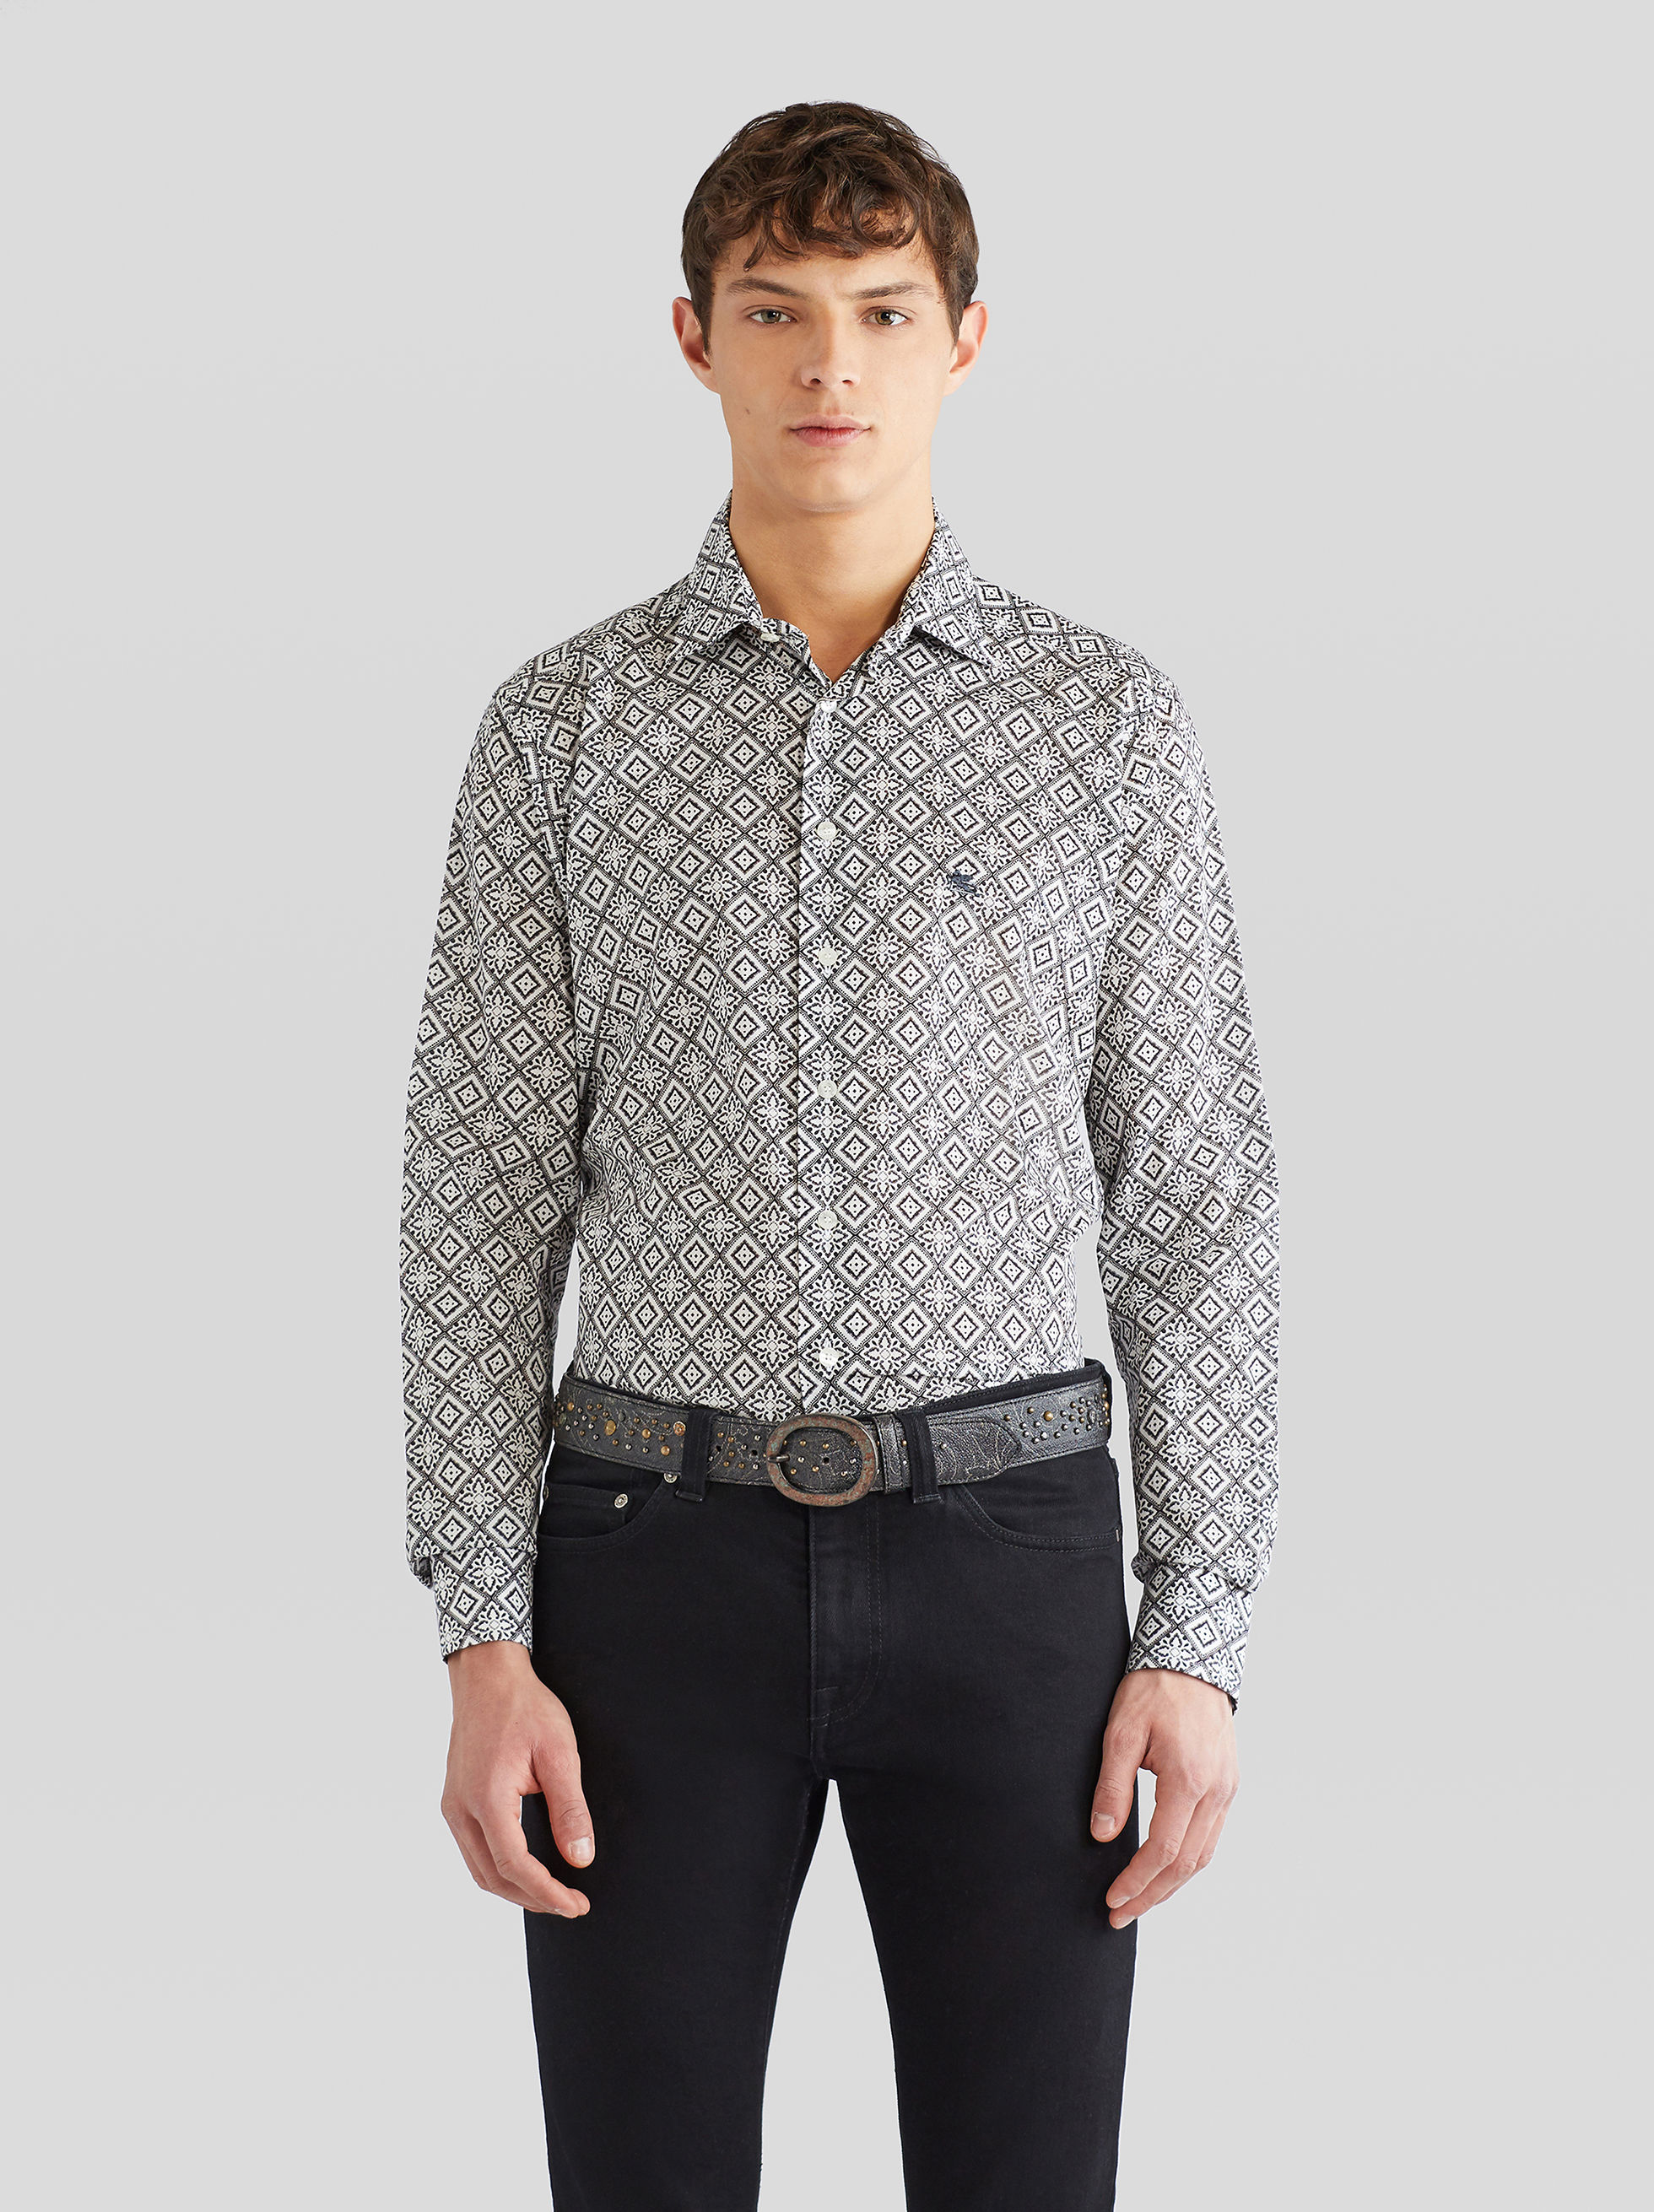 TIE FABRIC PRINT SHIRT WITH PEGASO